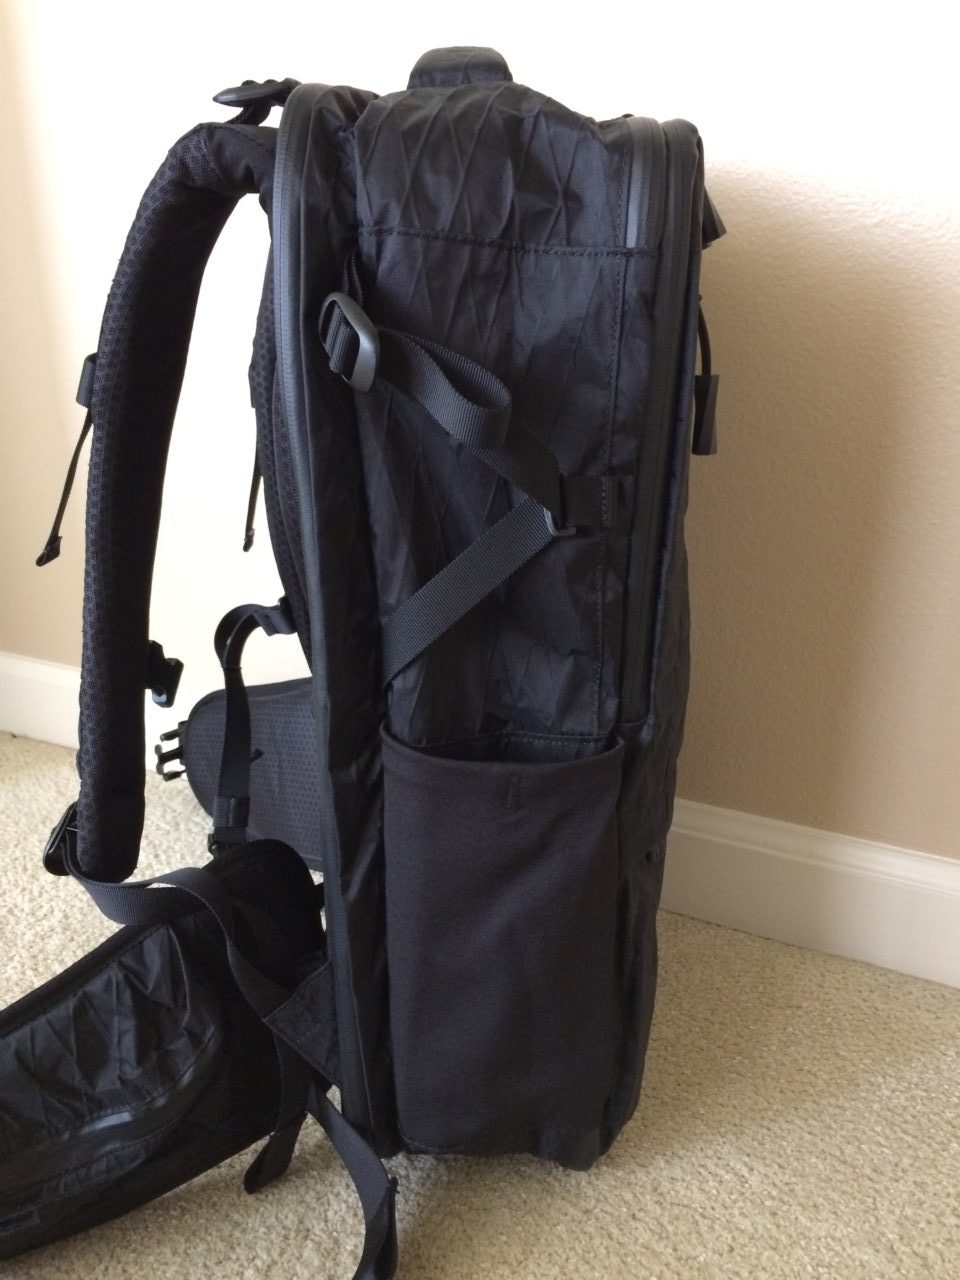 Tortuga Outbreaker Backpack side view